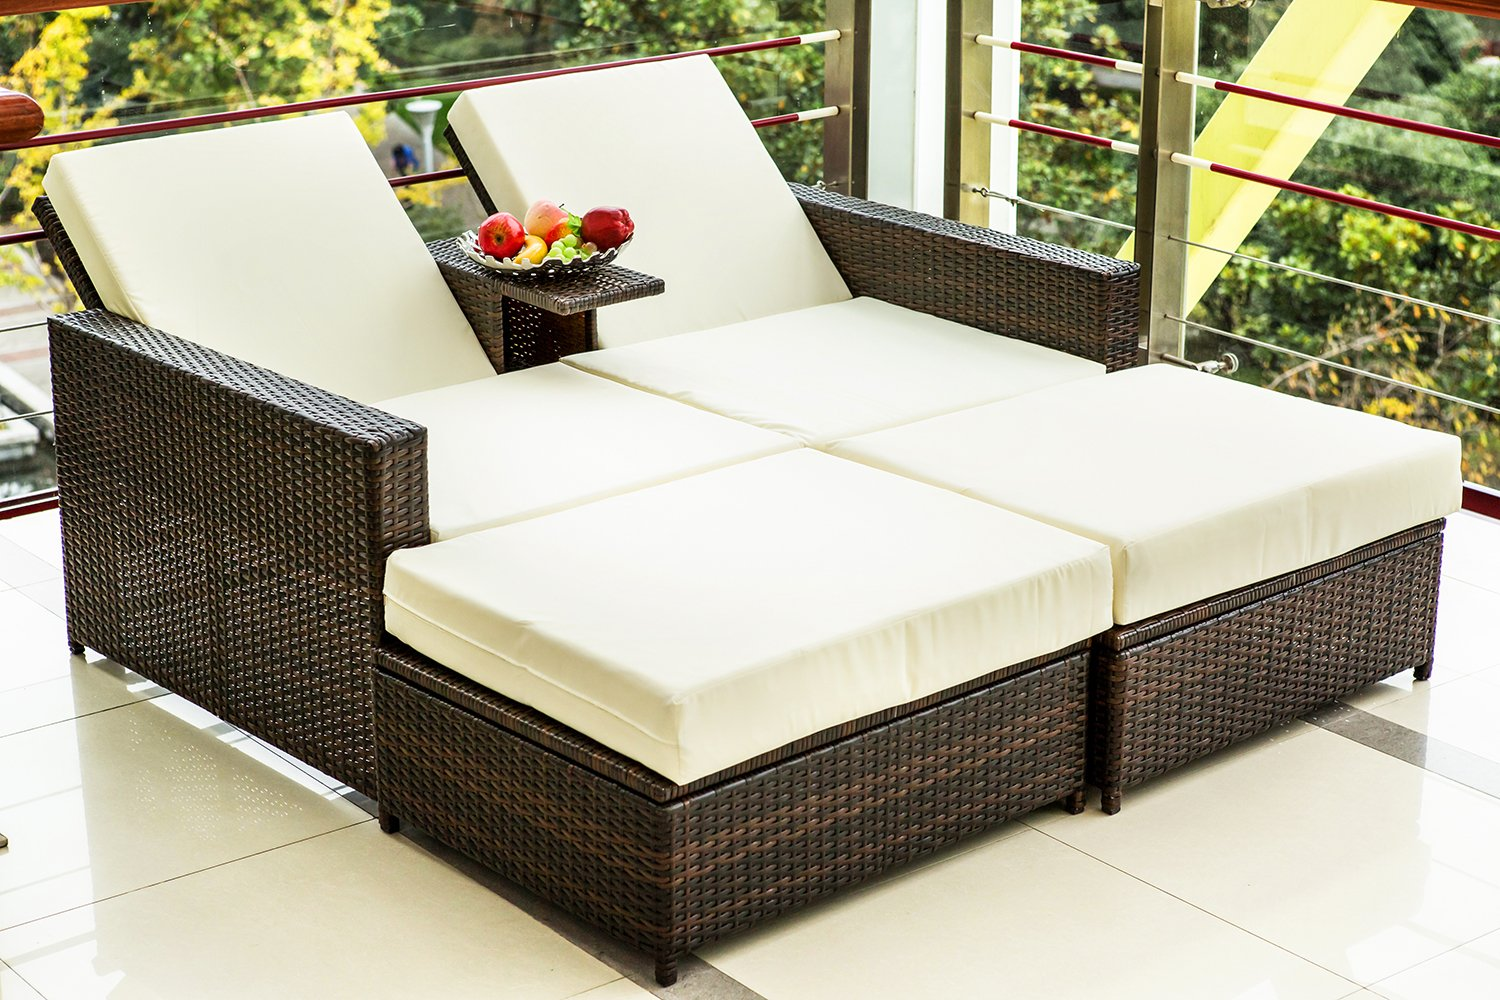 Merax 3 PC Outdoor Rattan Patio Furniture Wicker Sofa/Bed Sectional Lounge Furniture Set